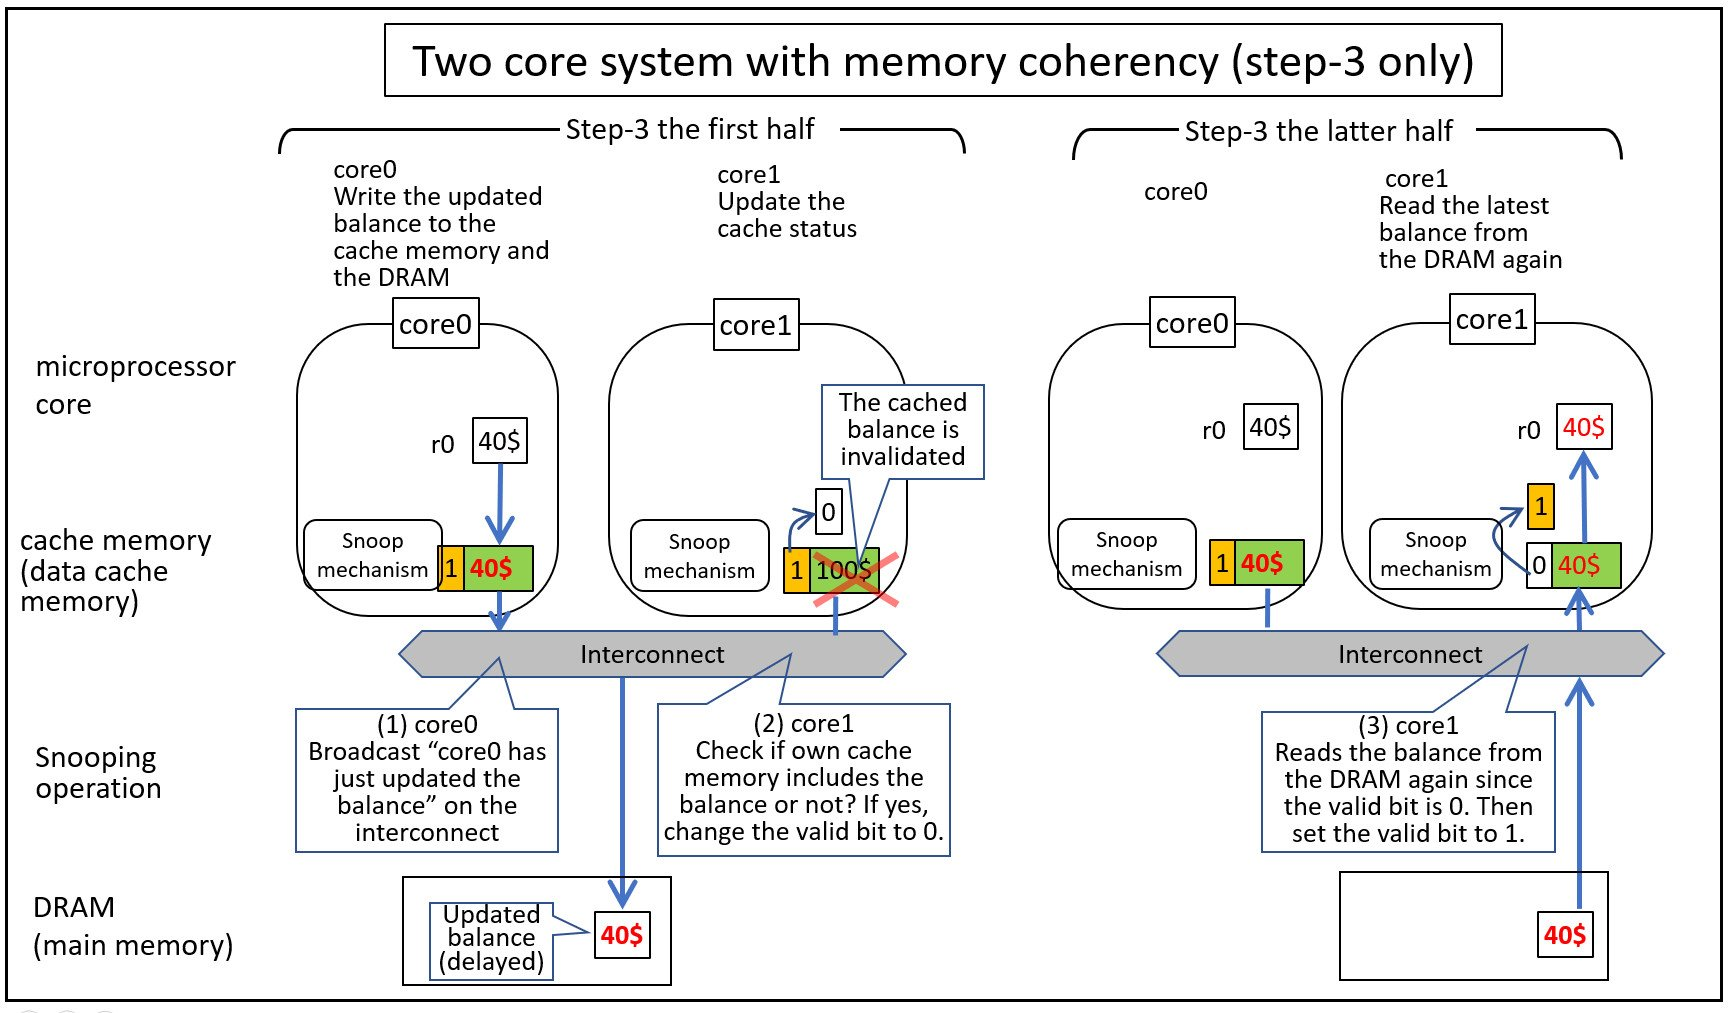 A diagram showing step 3 of the banking example for a two-core system with cache coherency.